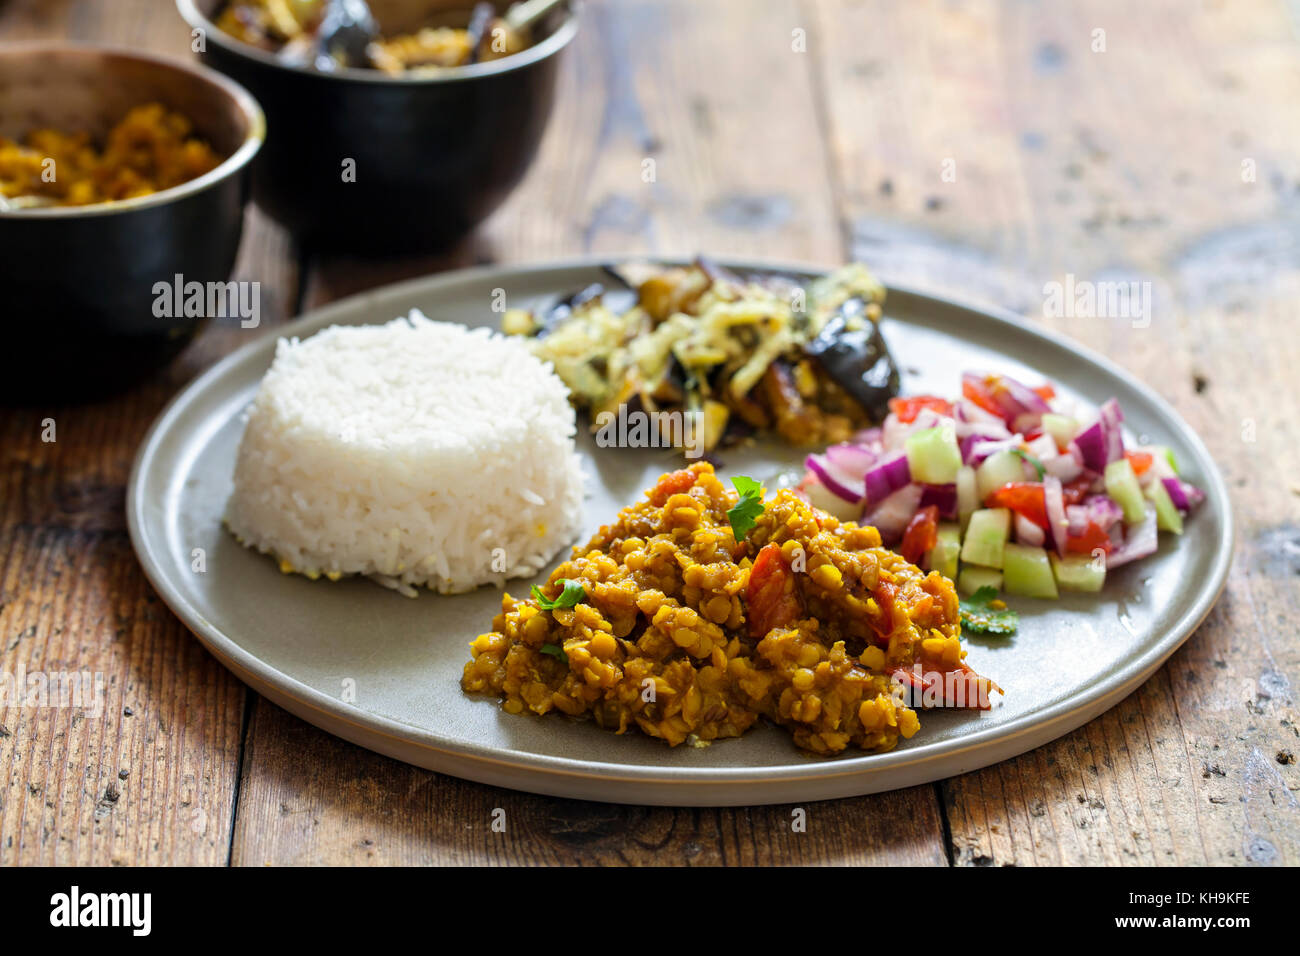 Indian meal with masoor dal - lentil curry, dahi baingan, rice and salad Stock Photo